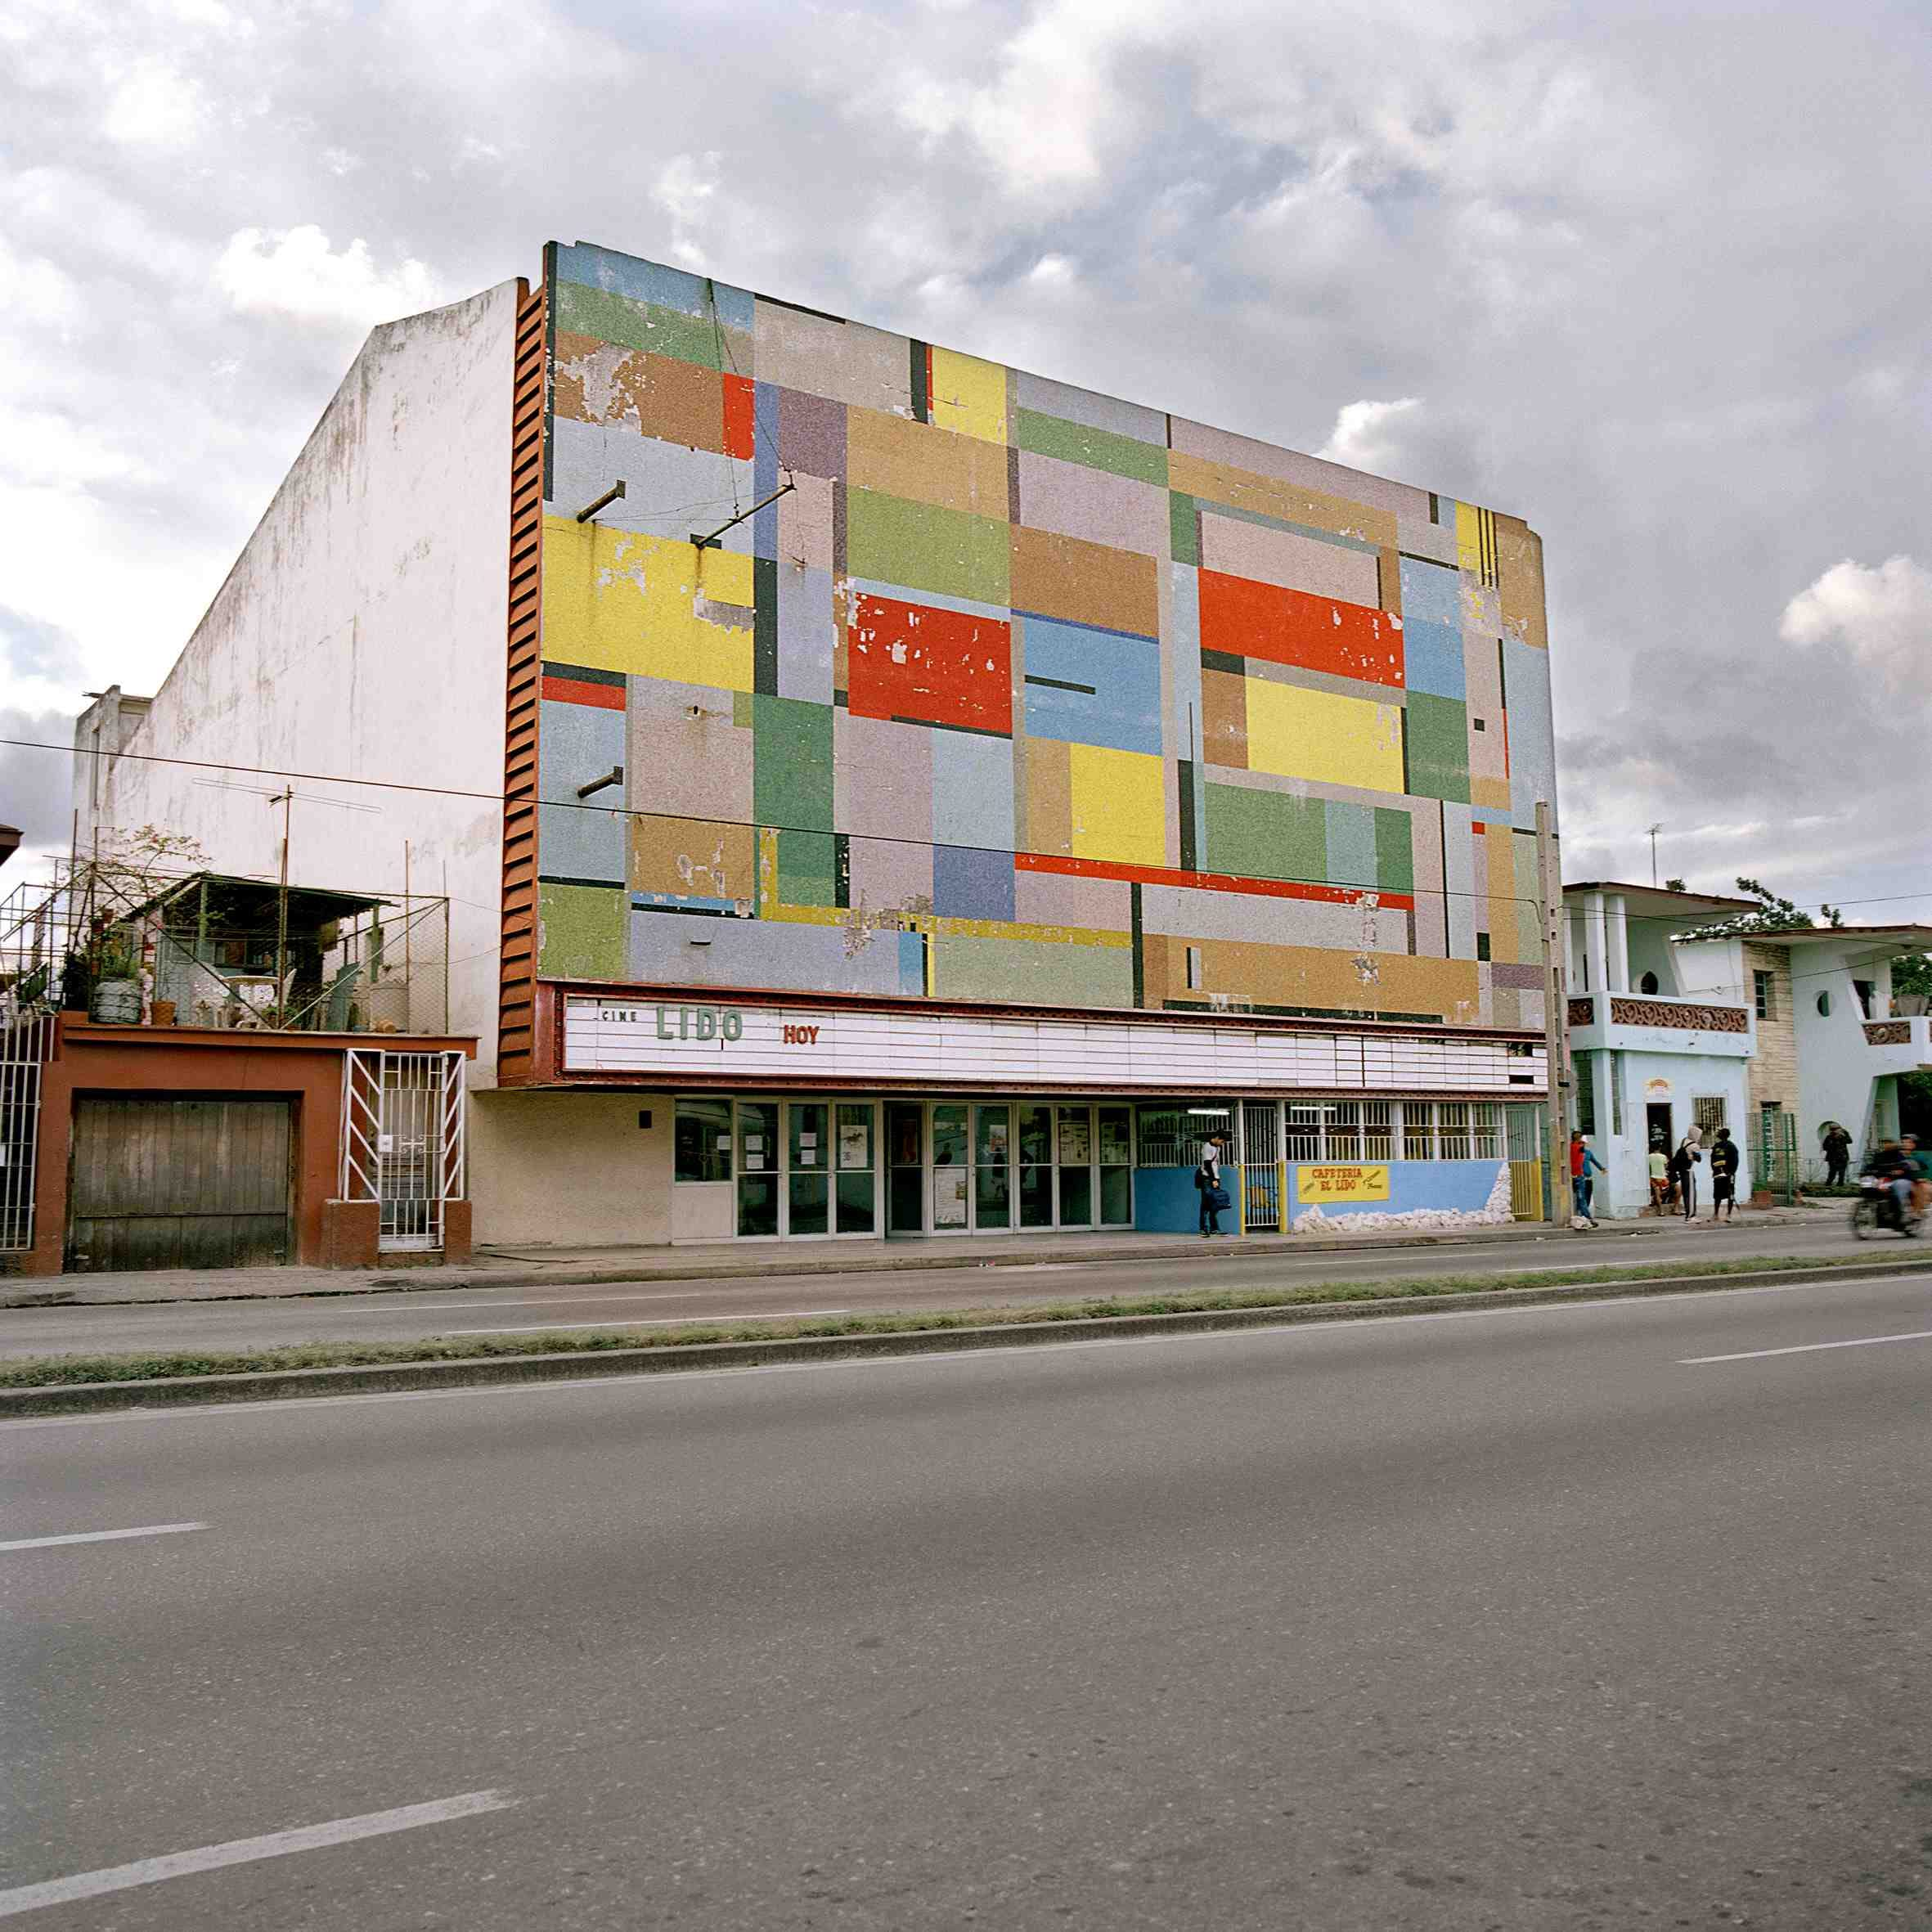 By 1958 Cuba had more movie theatres than the cities of Paris and New York combined.